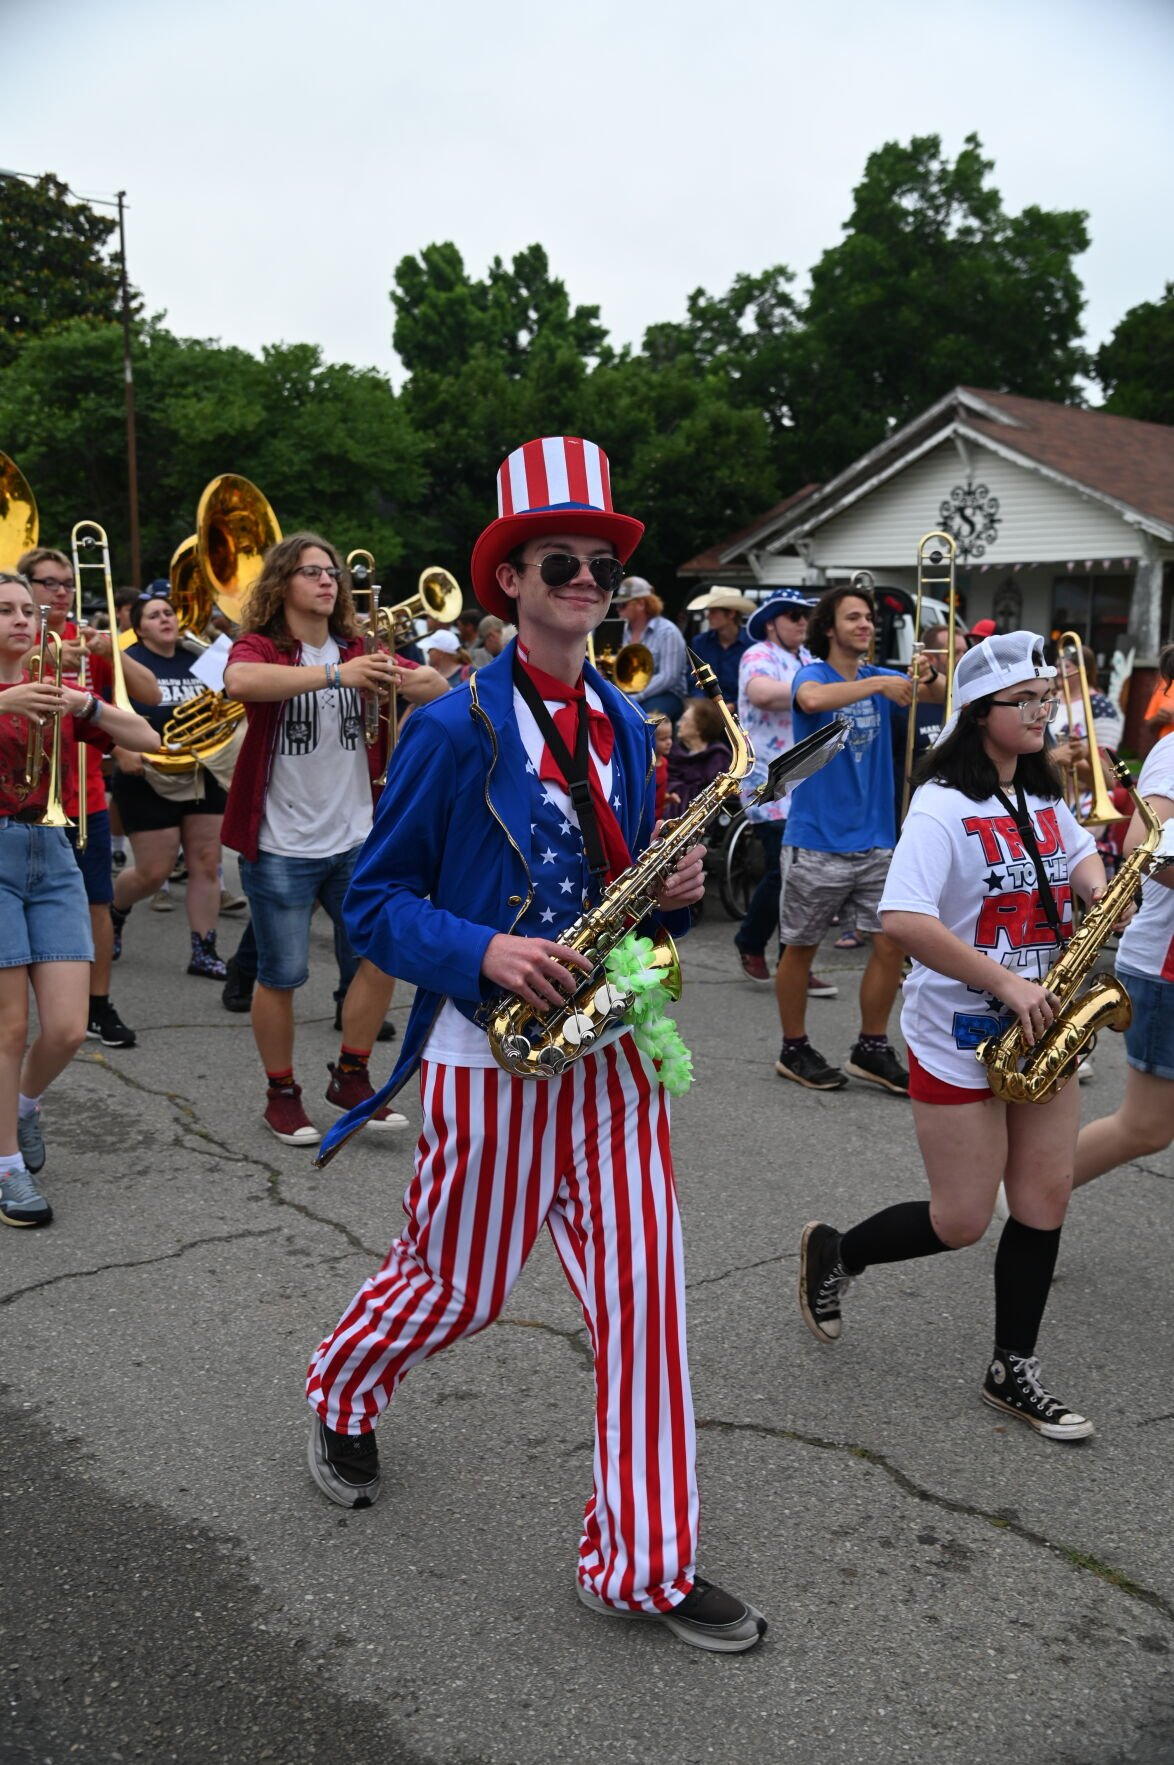 Marlow's 4th of July Celebration